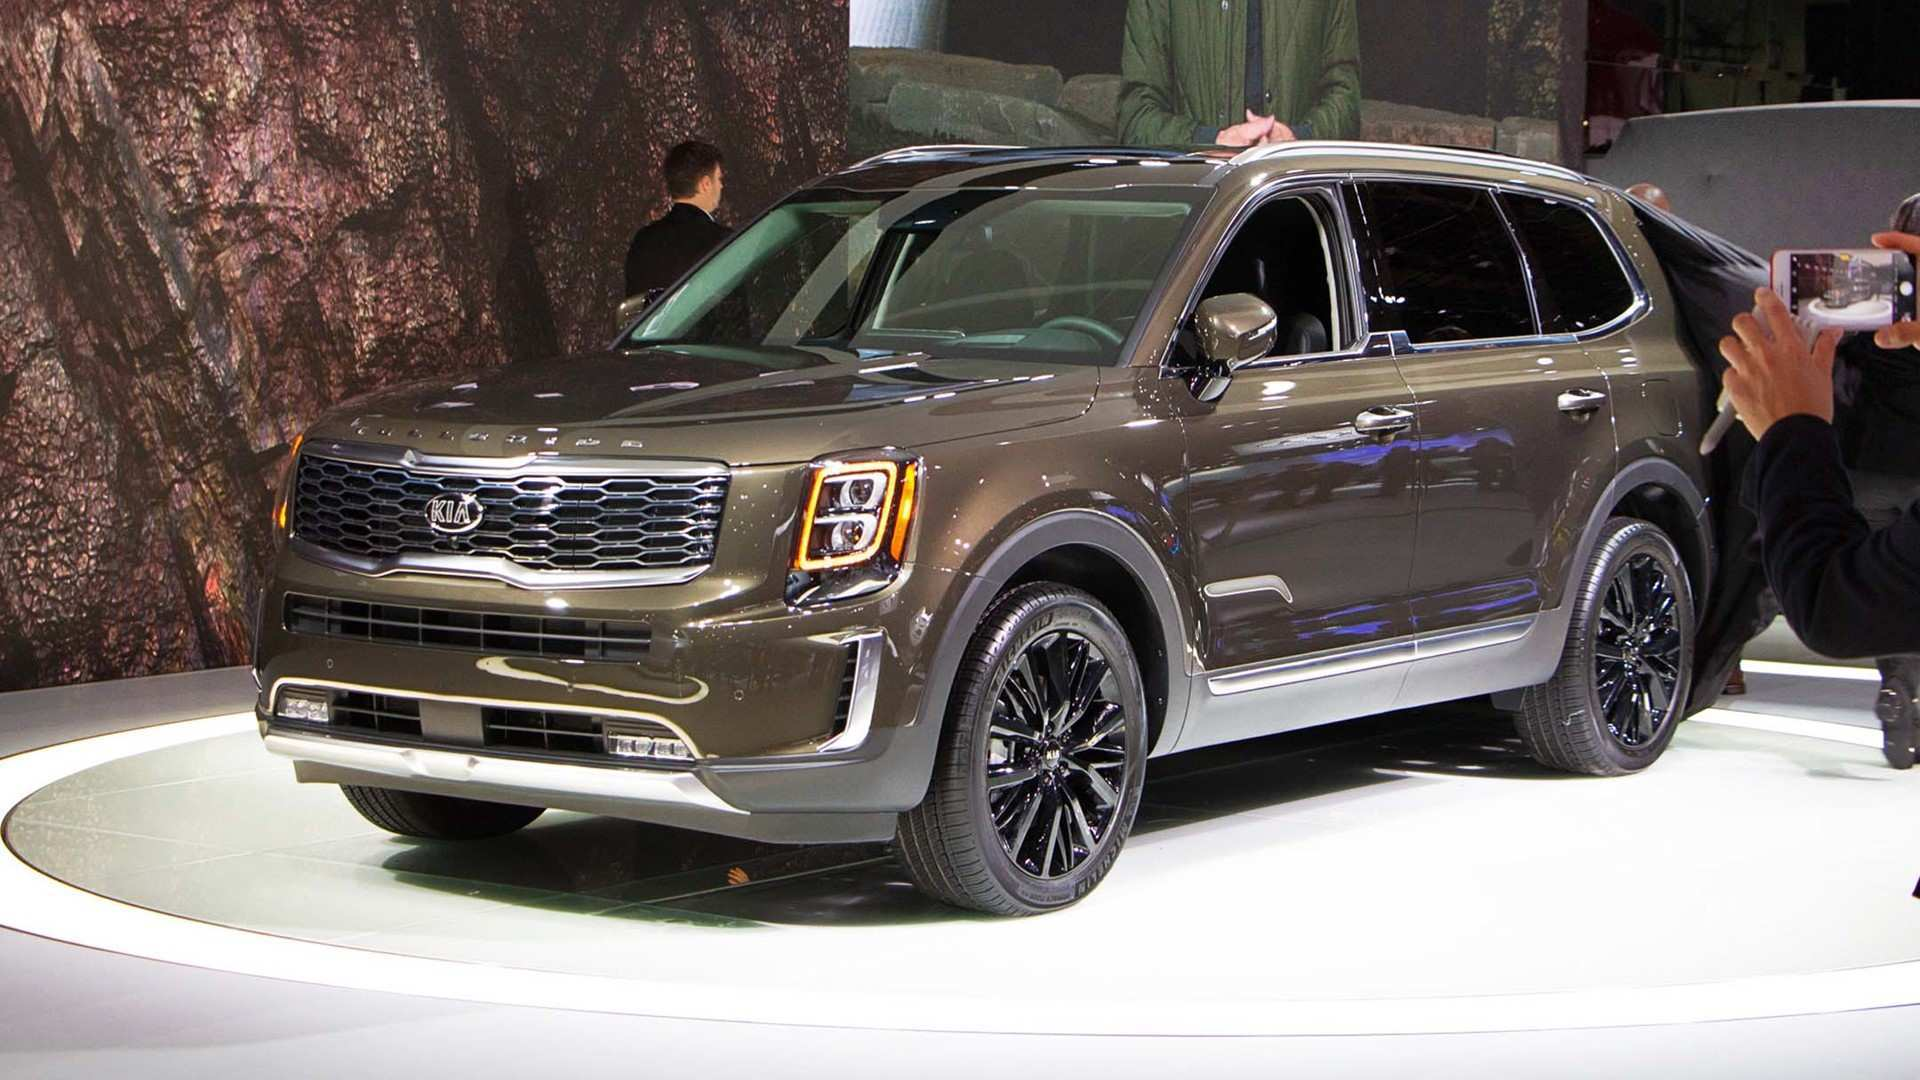 18 The Best Kia Telluride 2020 For Sale Ratings